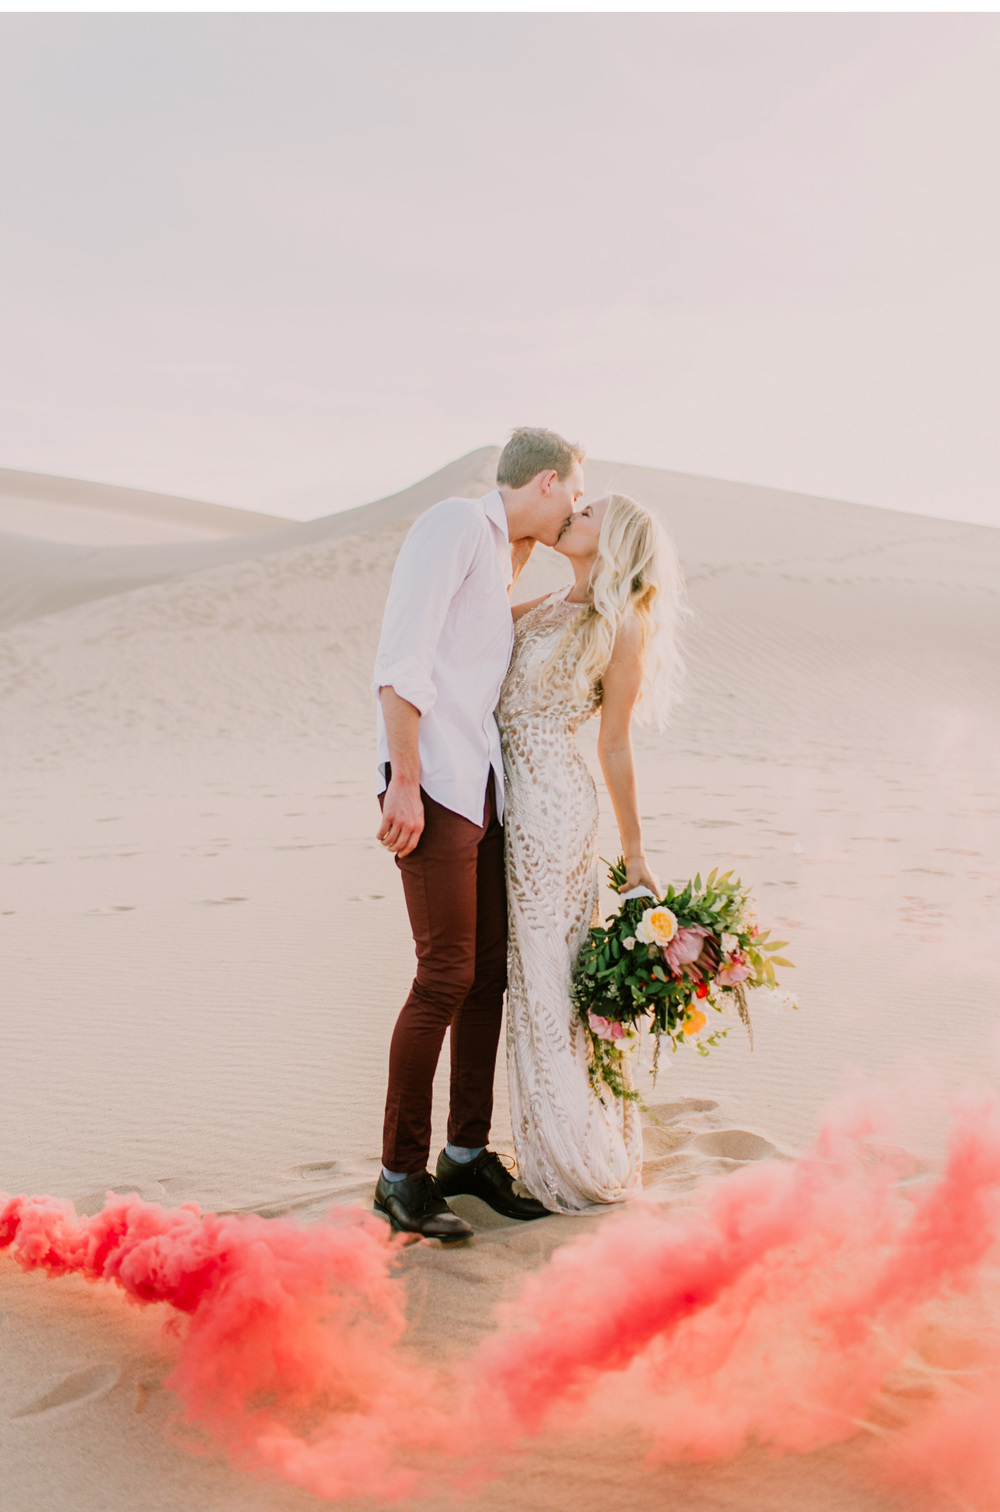 Desert-Wedding-Free-People-Wedding-Natalie-Schutt-Photography_02.jpg